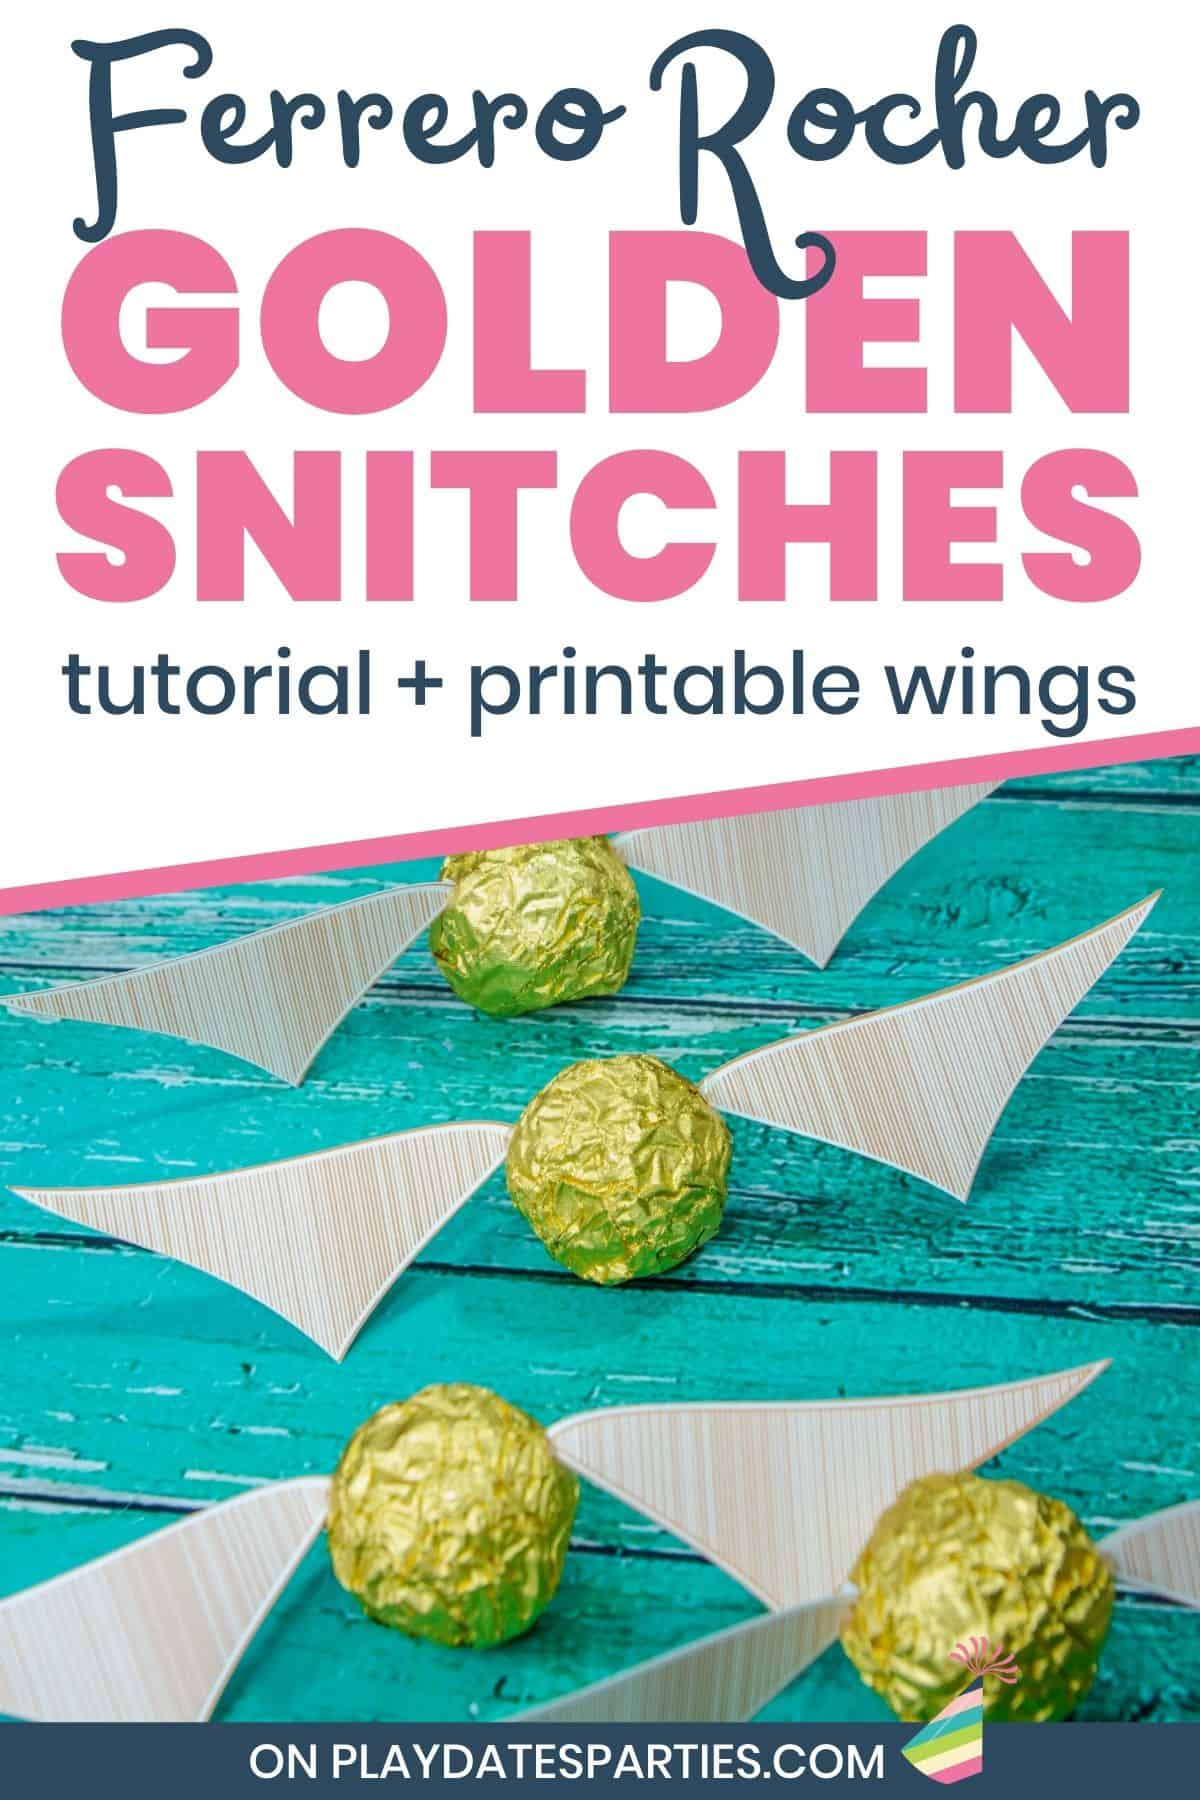 Close up of a chocolate truffle with wings and text overlay Ferrero Rocher golden snitches tutorial + printable wings.